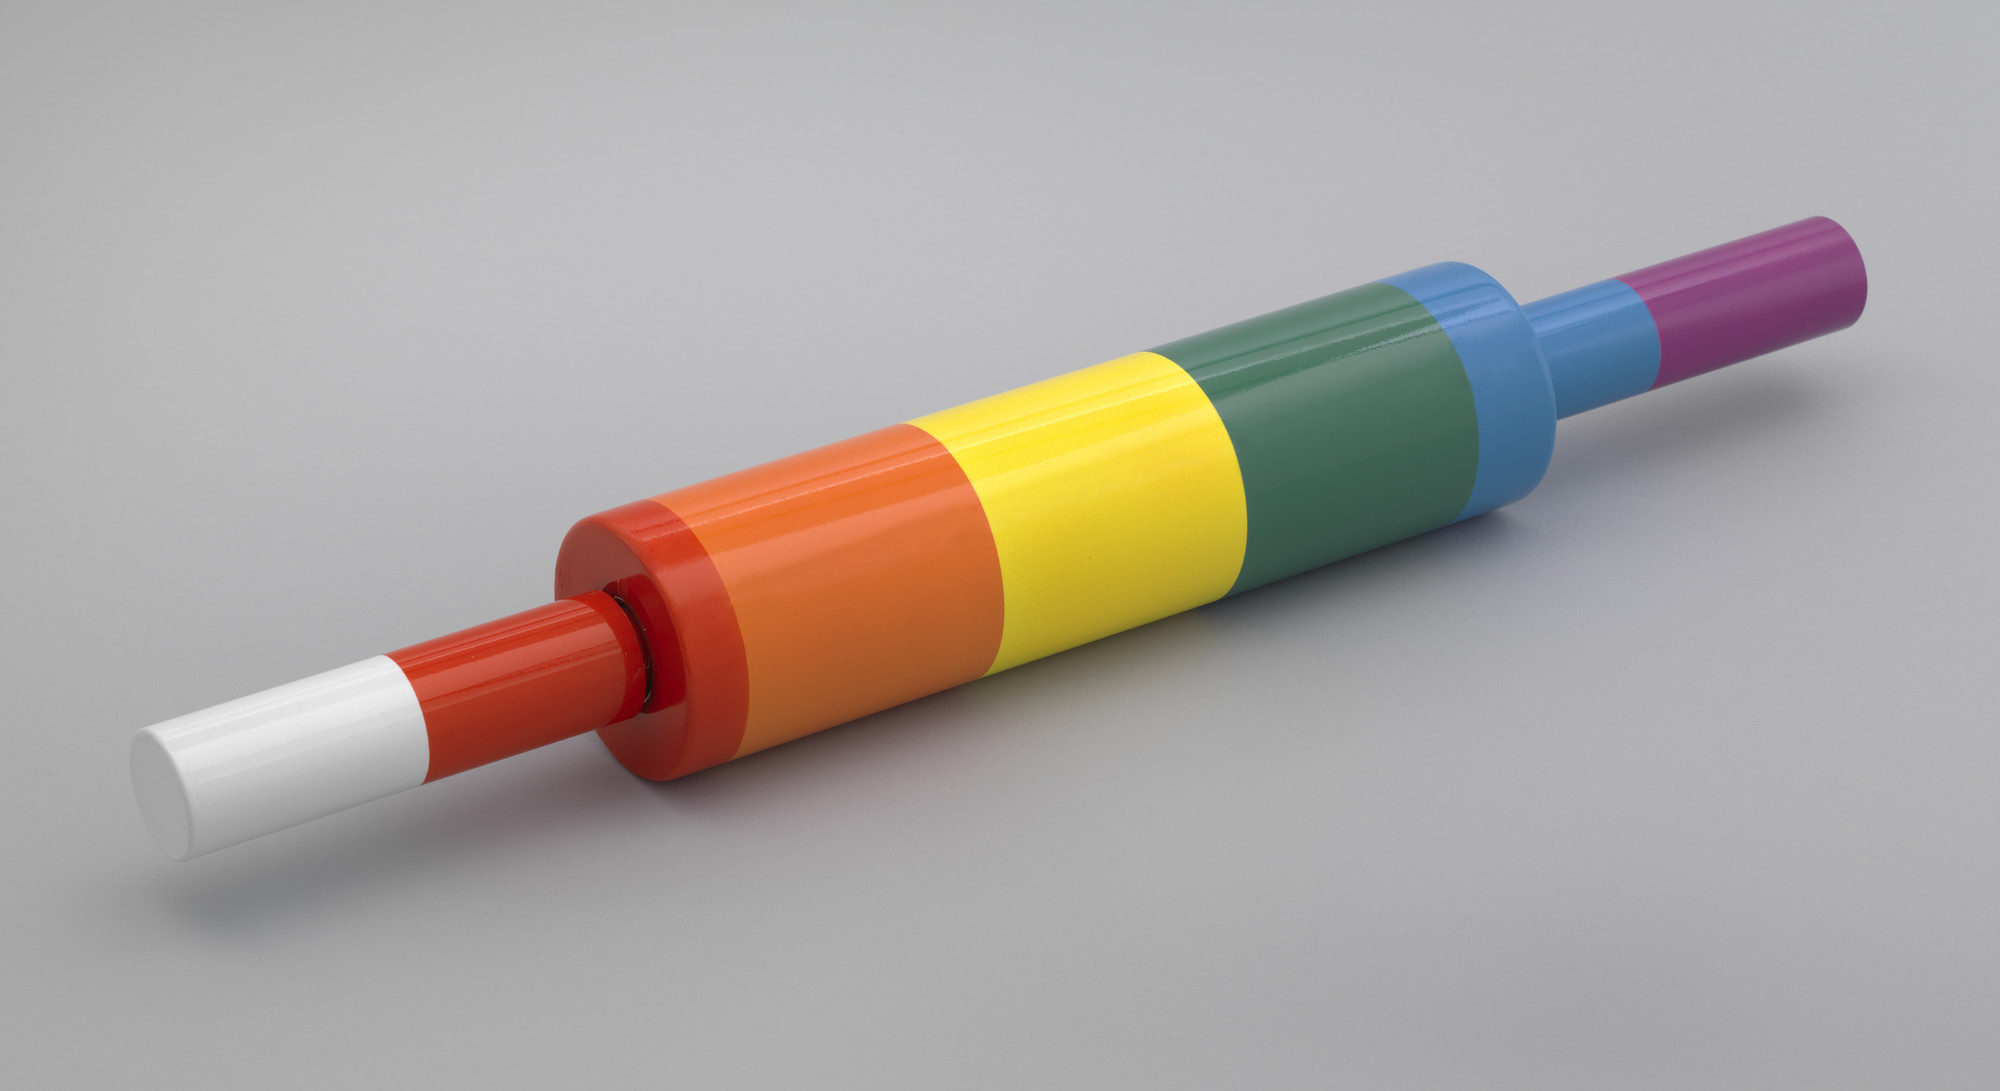 Cosima von Bonin. Color Wheel (for Parkett no. 81). 2007